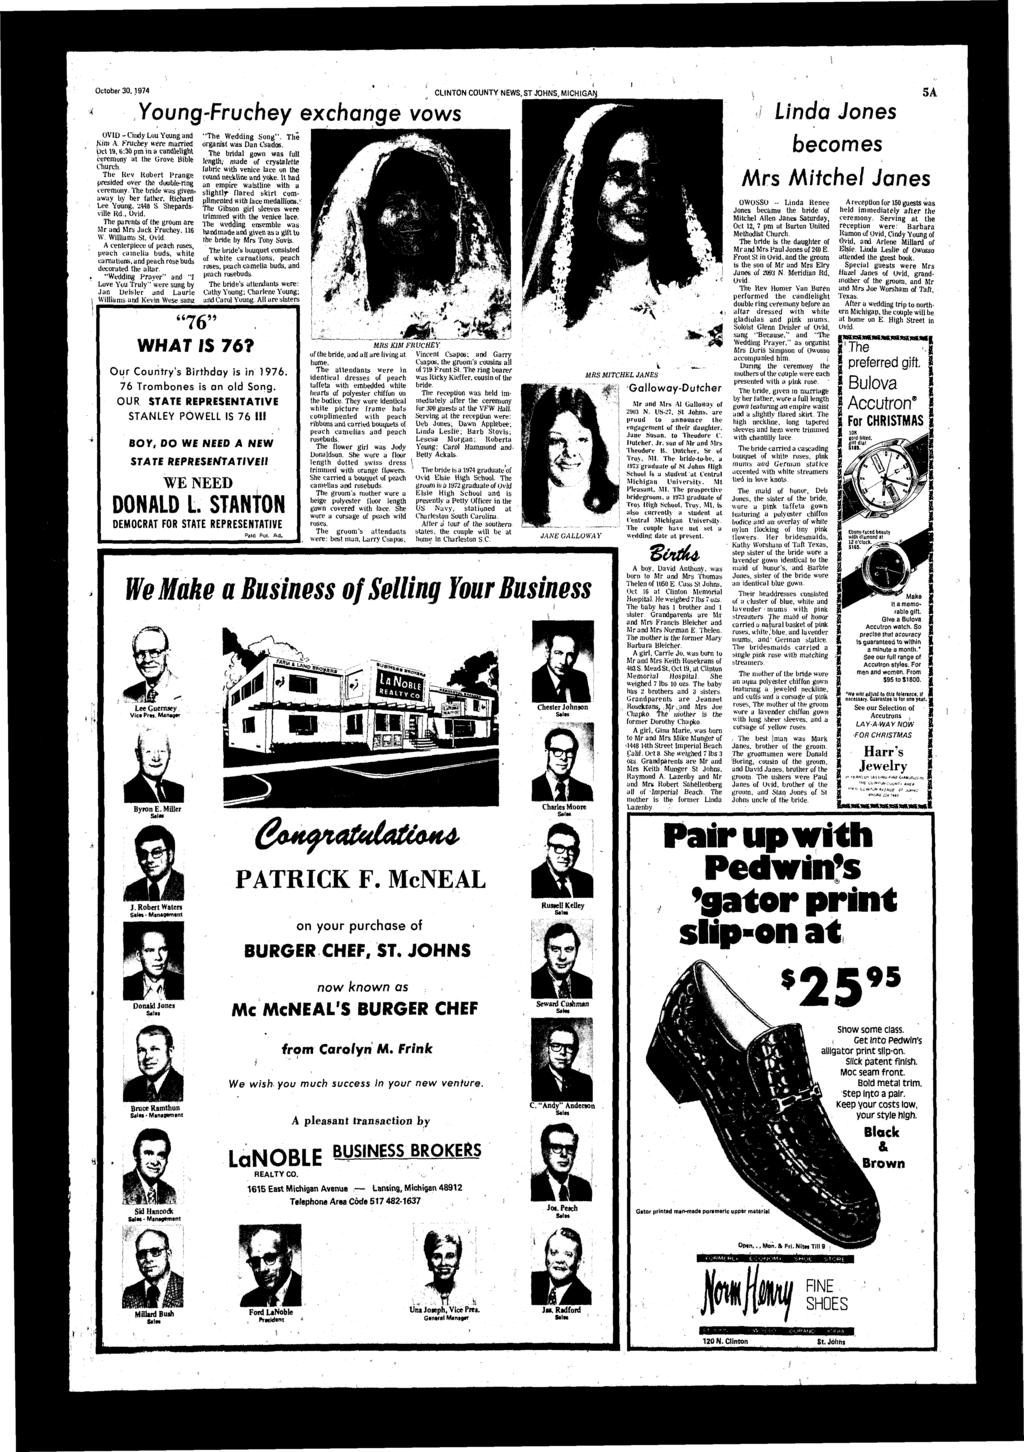 October 30,1974 CLINTON COUNTY NEWS, ST JOHNS, MICHIGAN Young-Fruchey exchnge vows OVI -Cindy Lou Young Kim A. Fruchey were mrried but 19,6:30 pm in clelight ceremony t the Grove Bible Church.